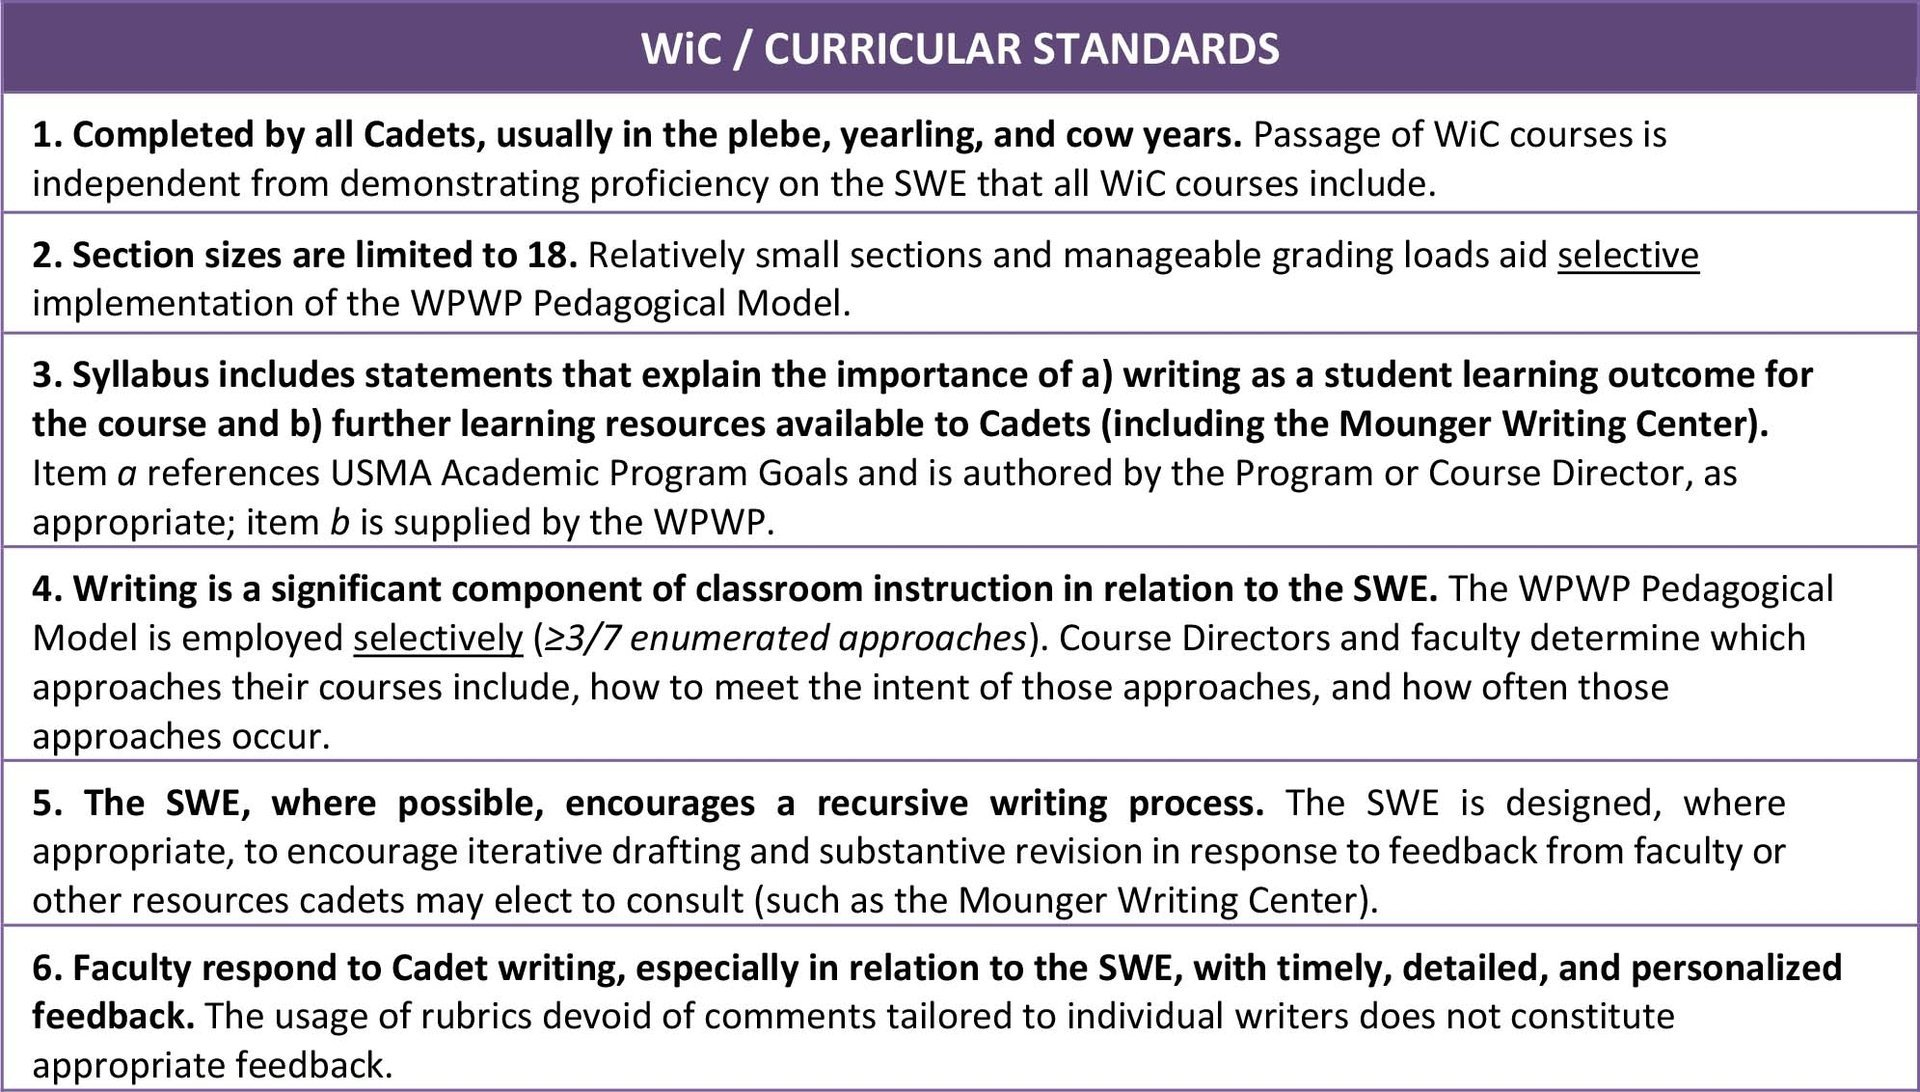 WiC Curricular Standards